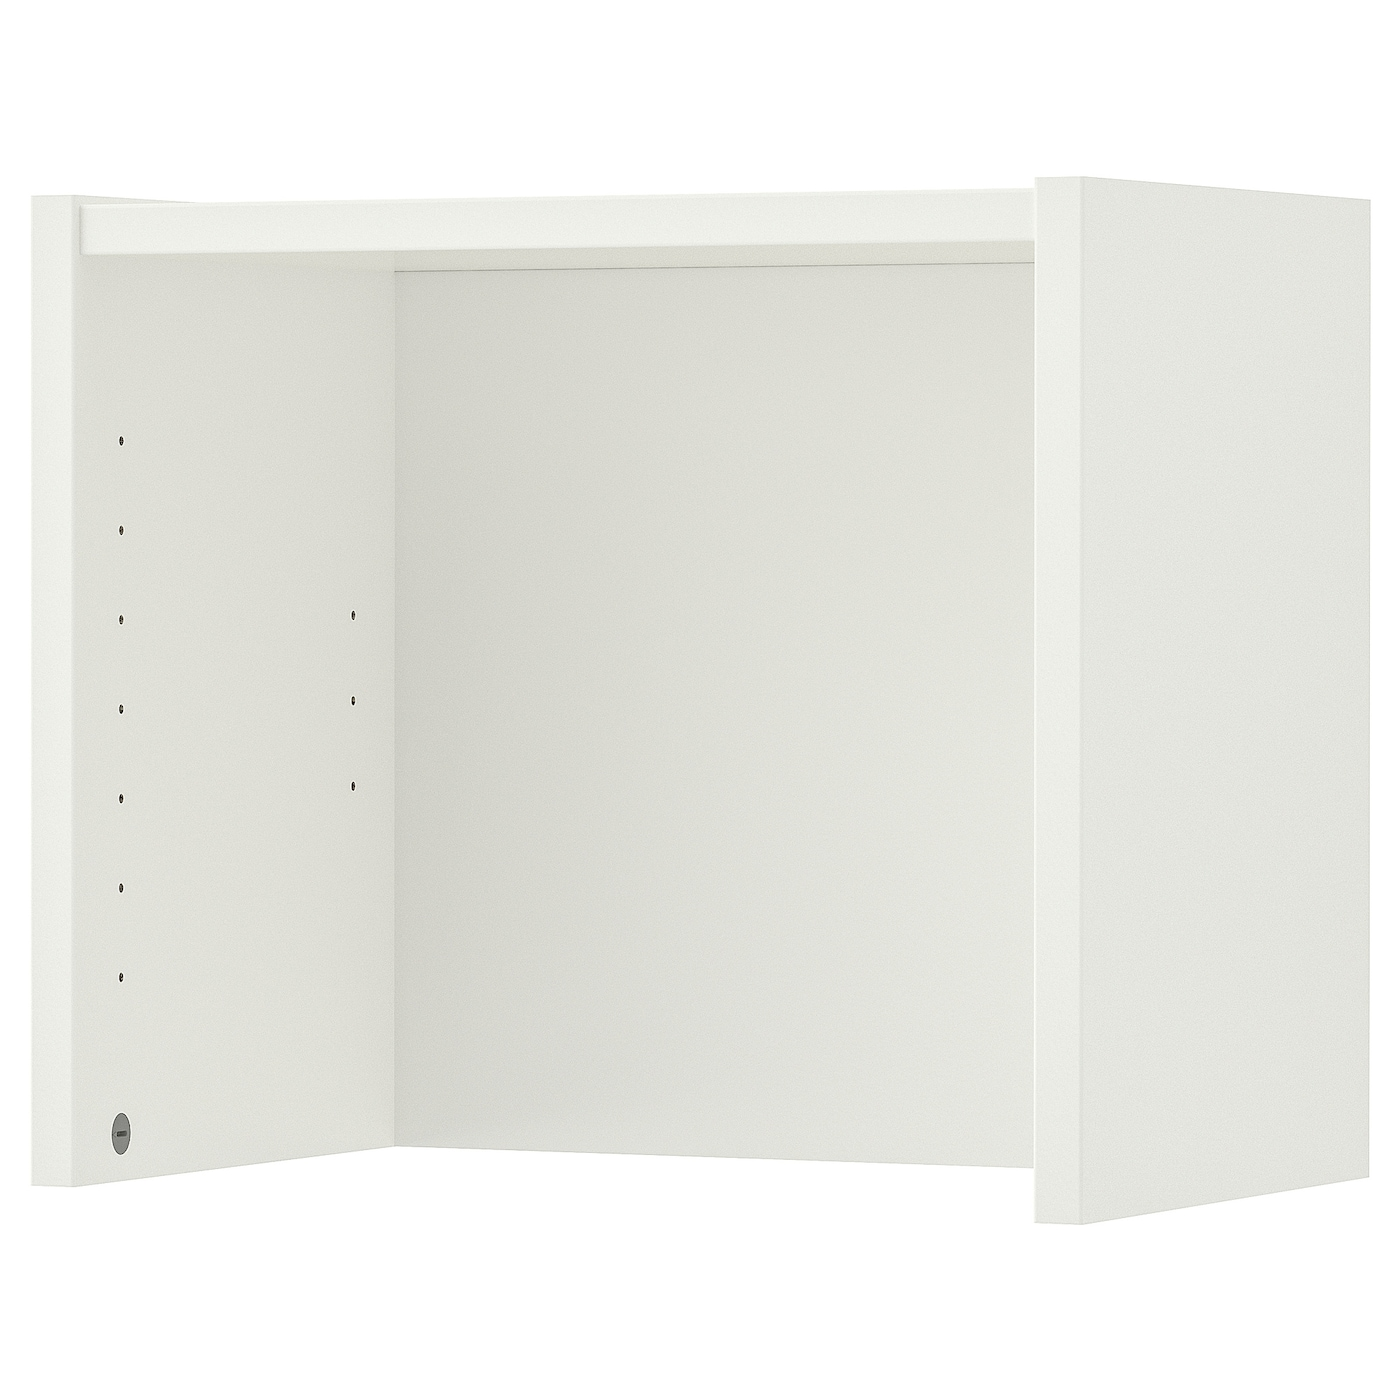 IKEA BILLY height extension unit